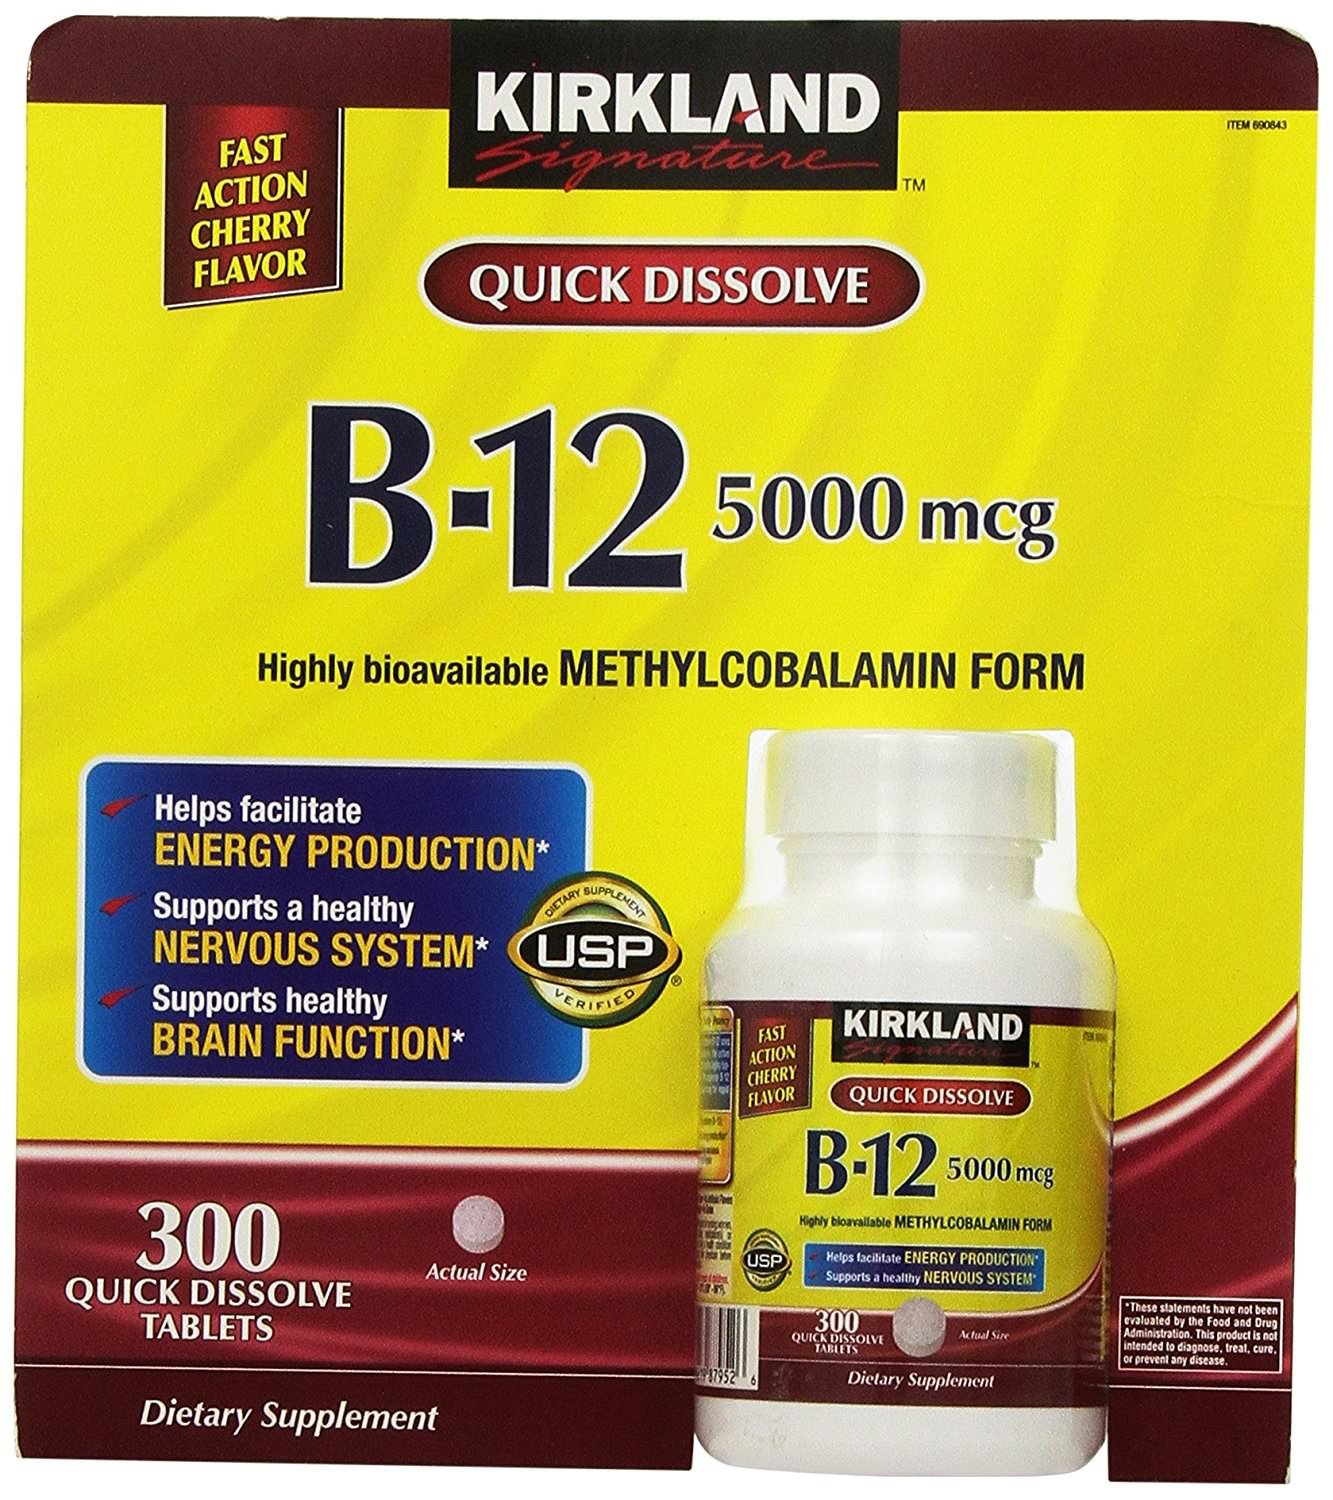 Kirkland zTWEnF Sublingual B-12 5000 mcg. Cherry, Fast Act, 300 Tablets (4 Pack)